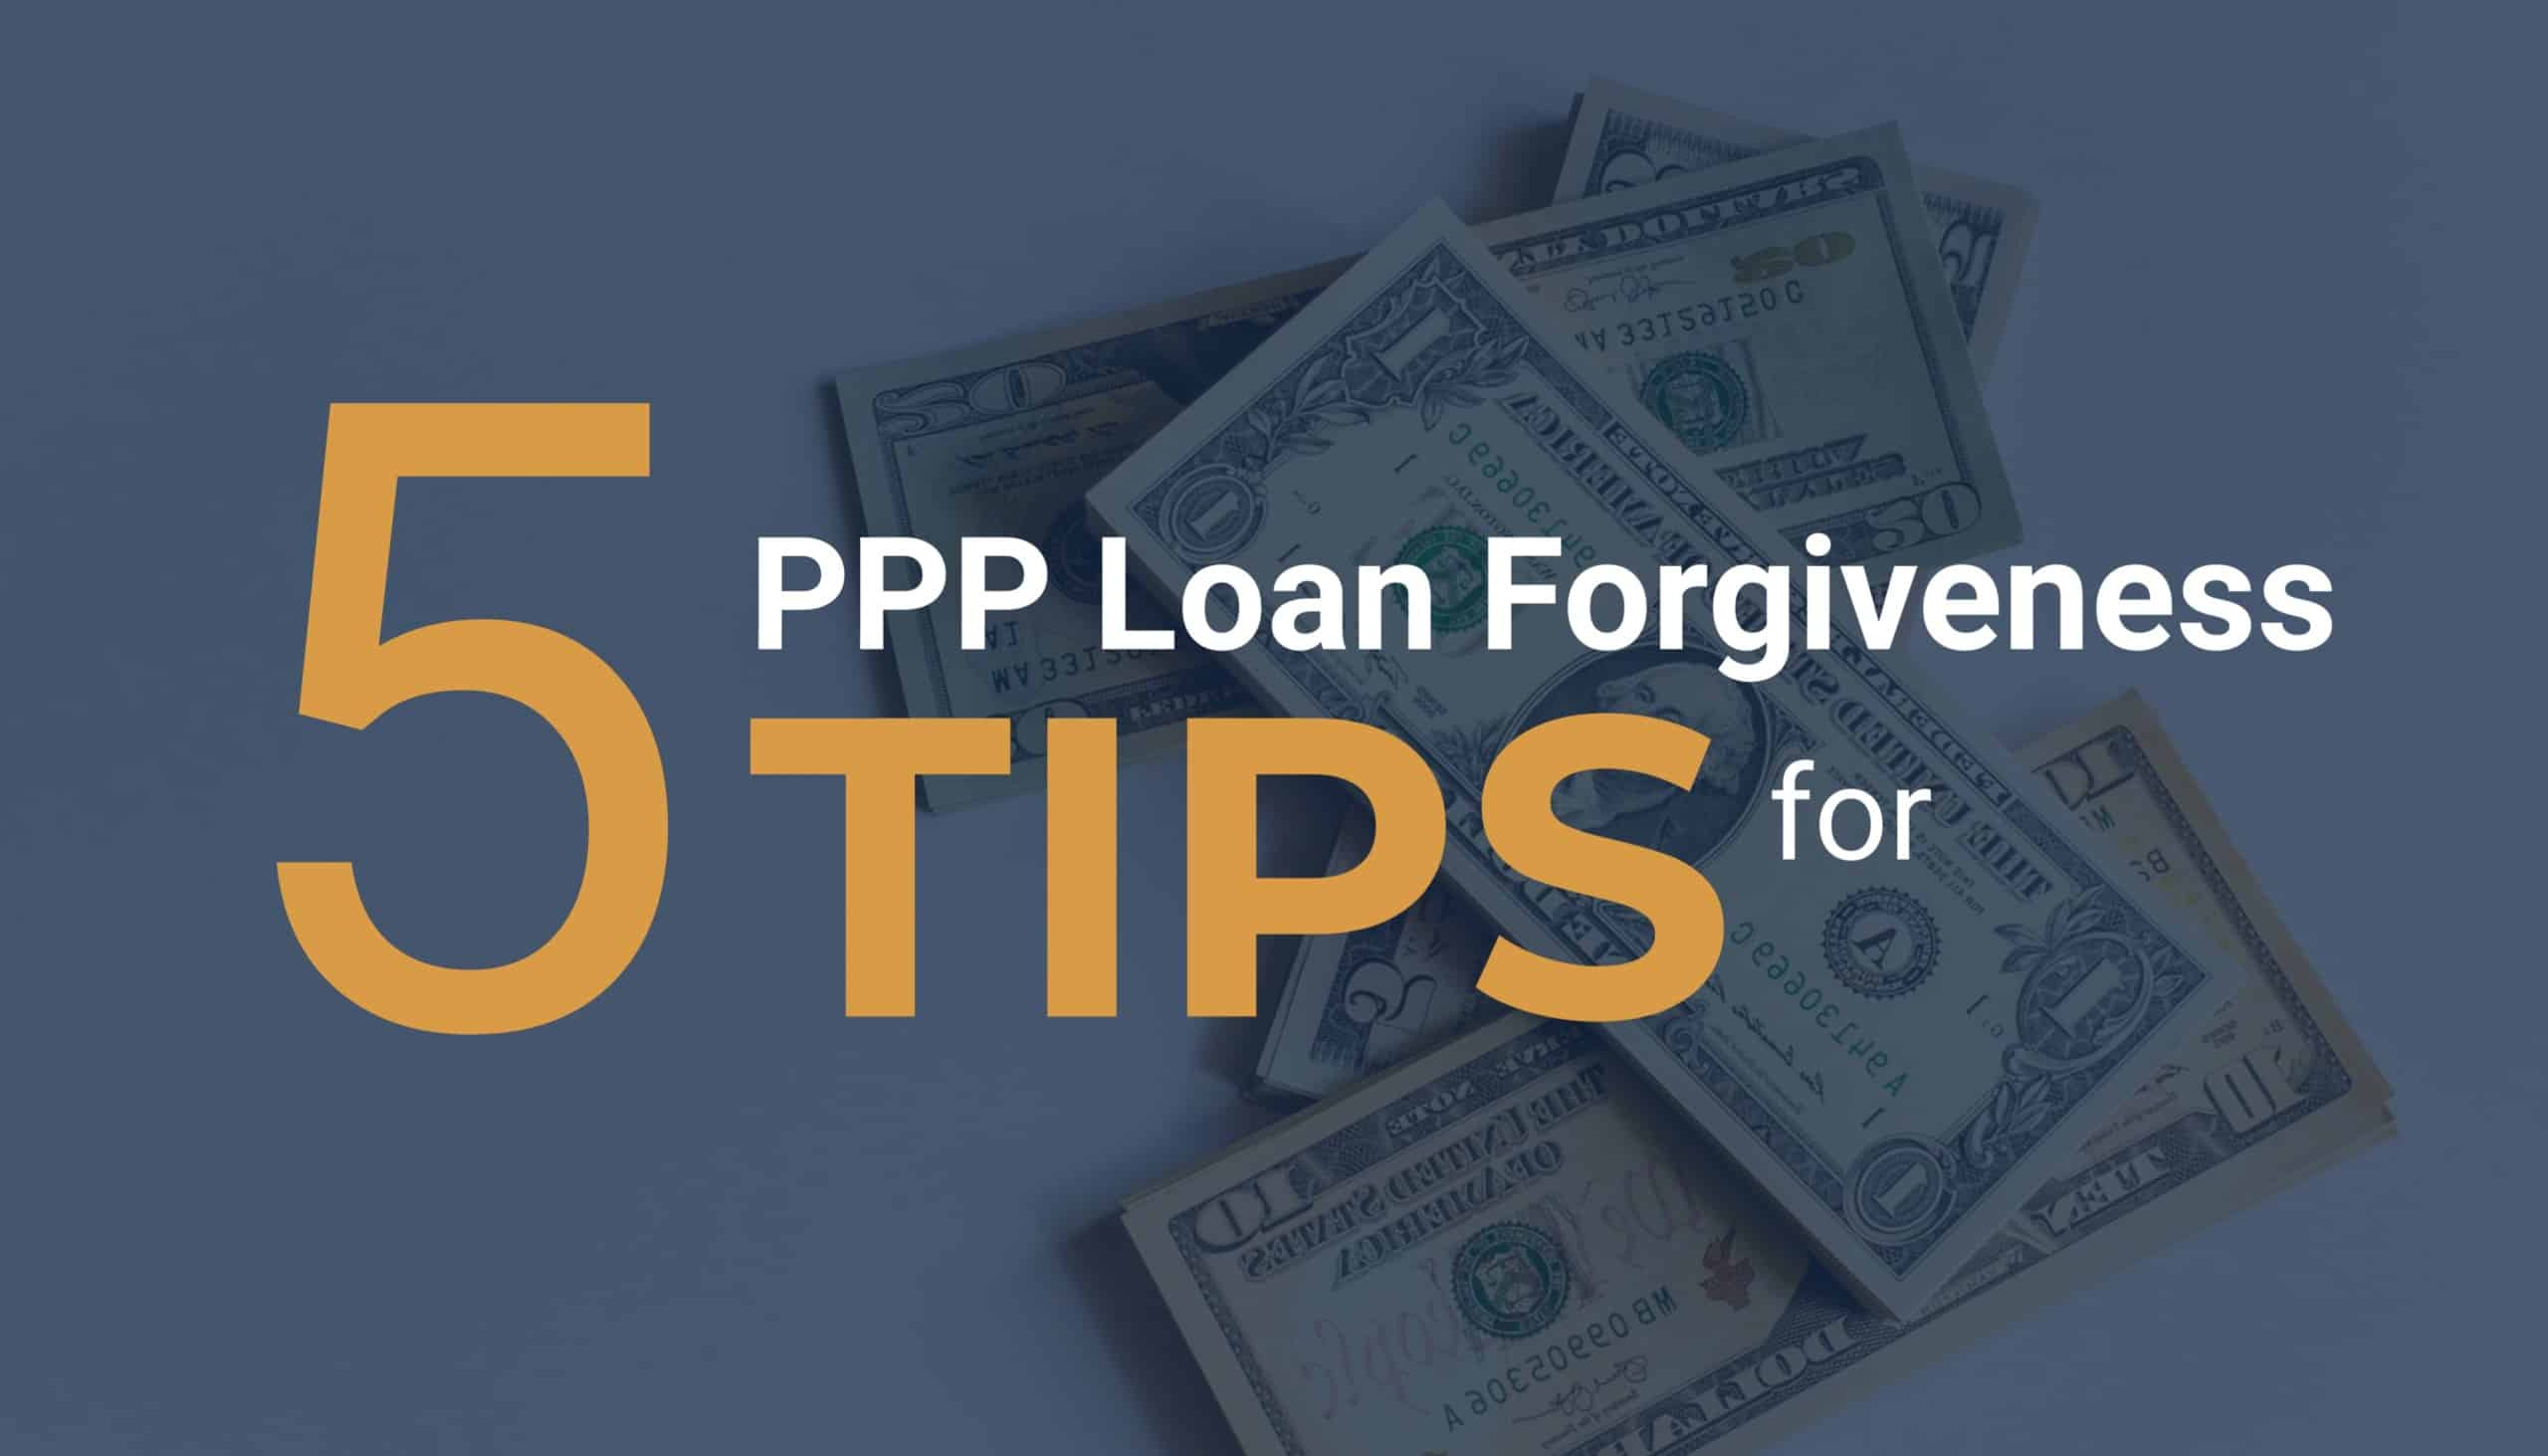 5 Tips for PPP Loan Forgiveness